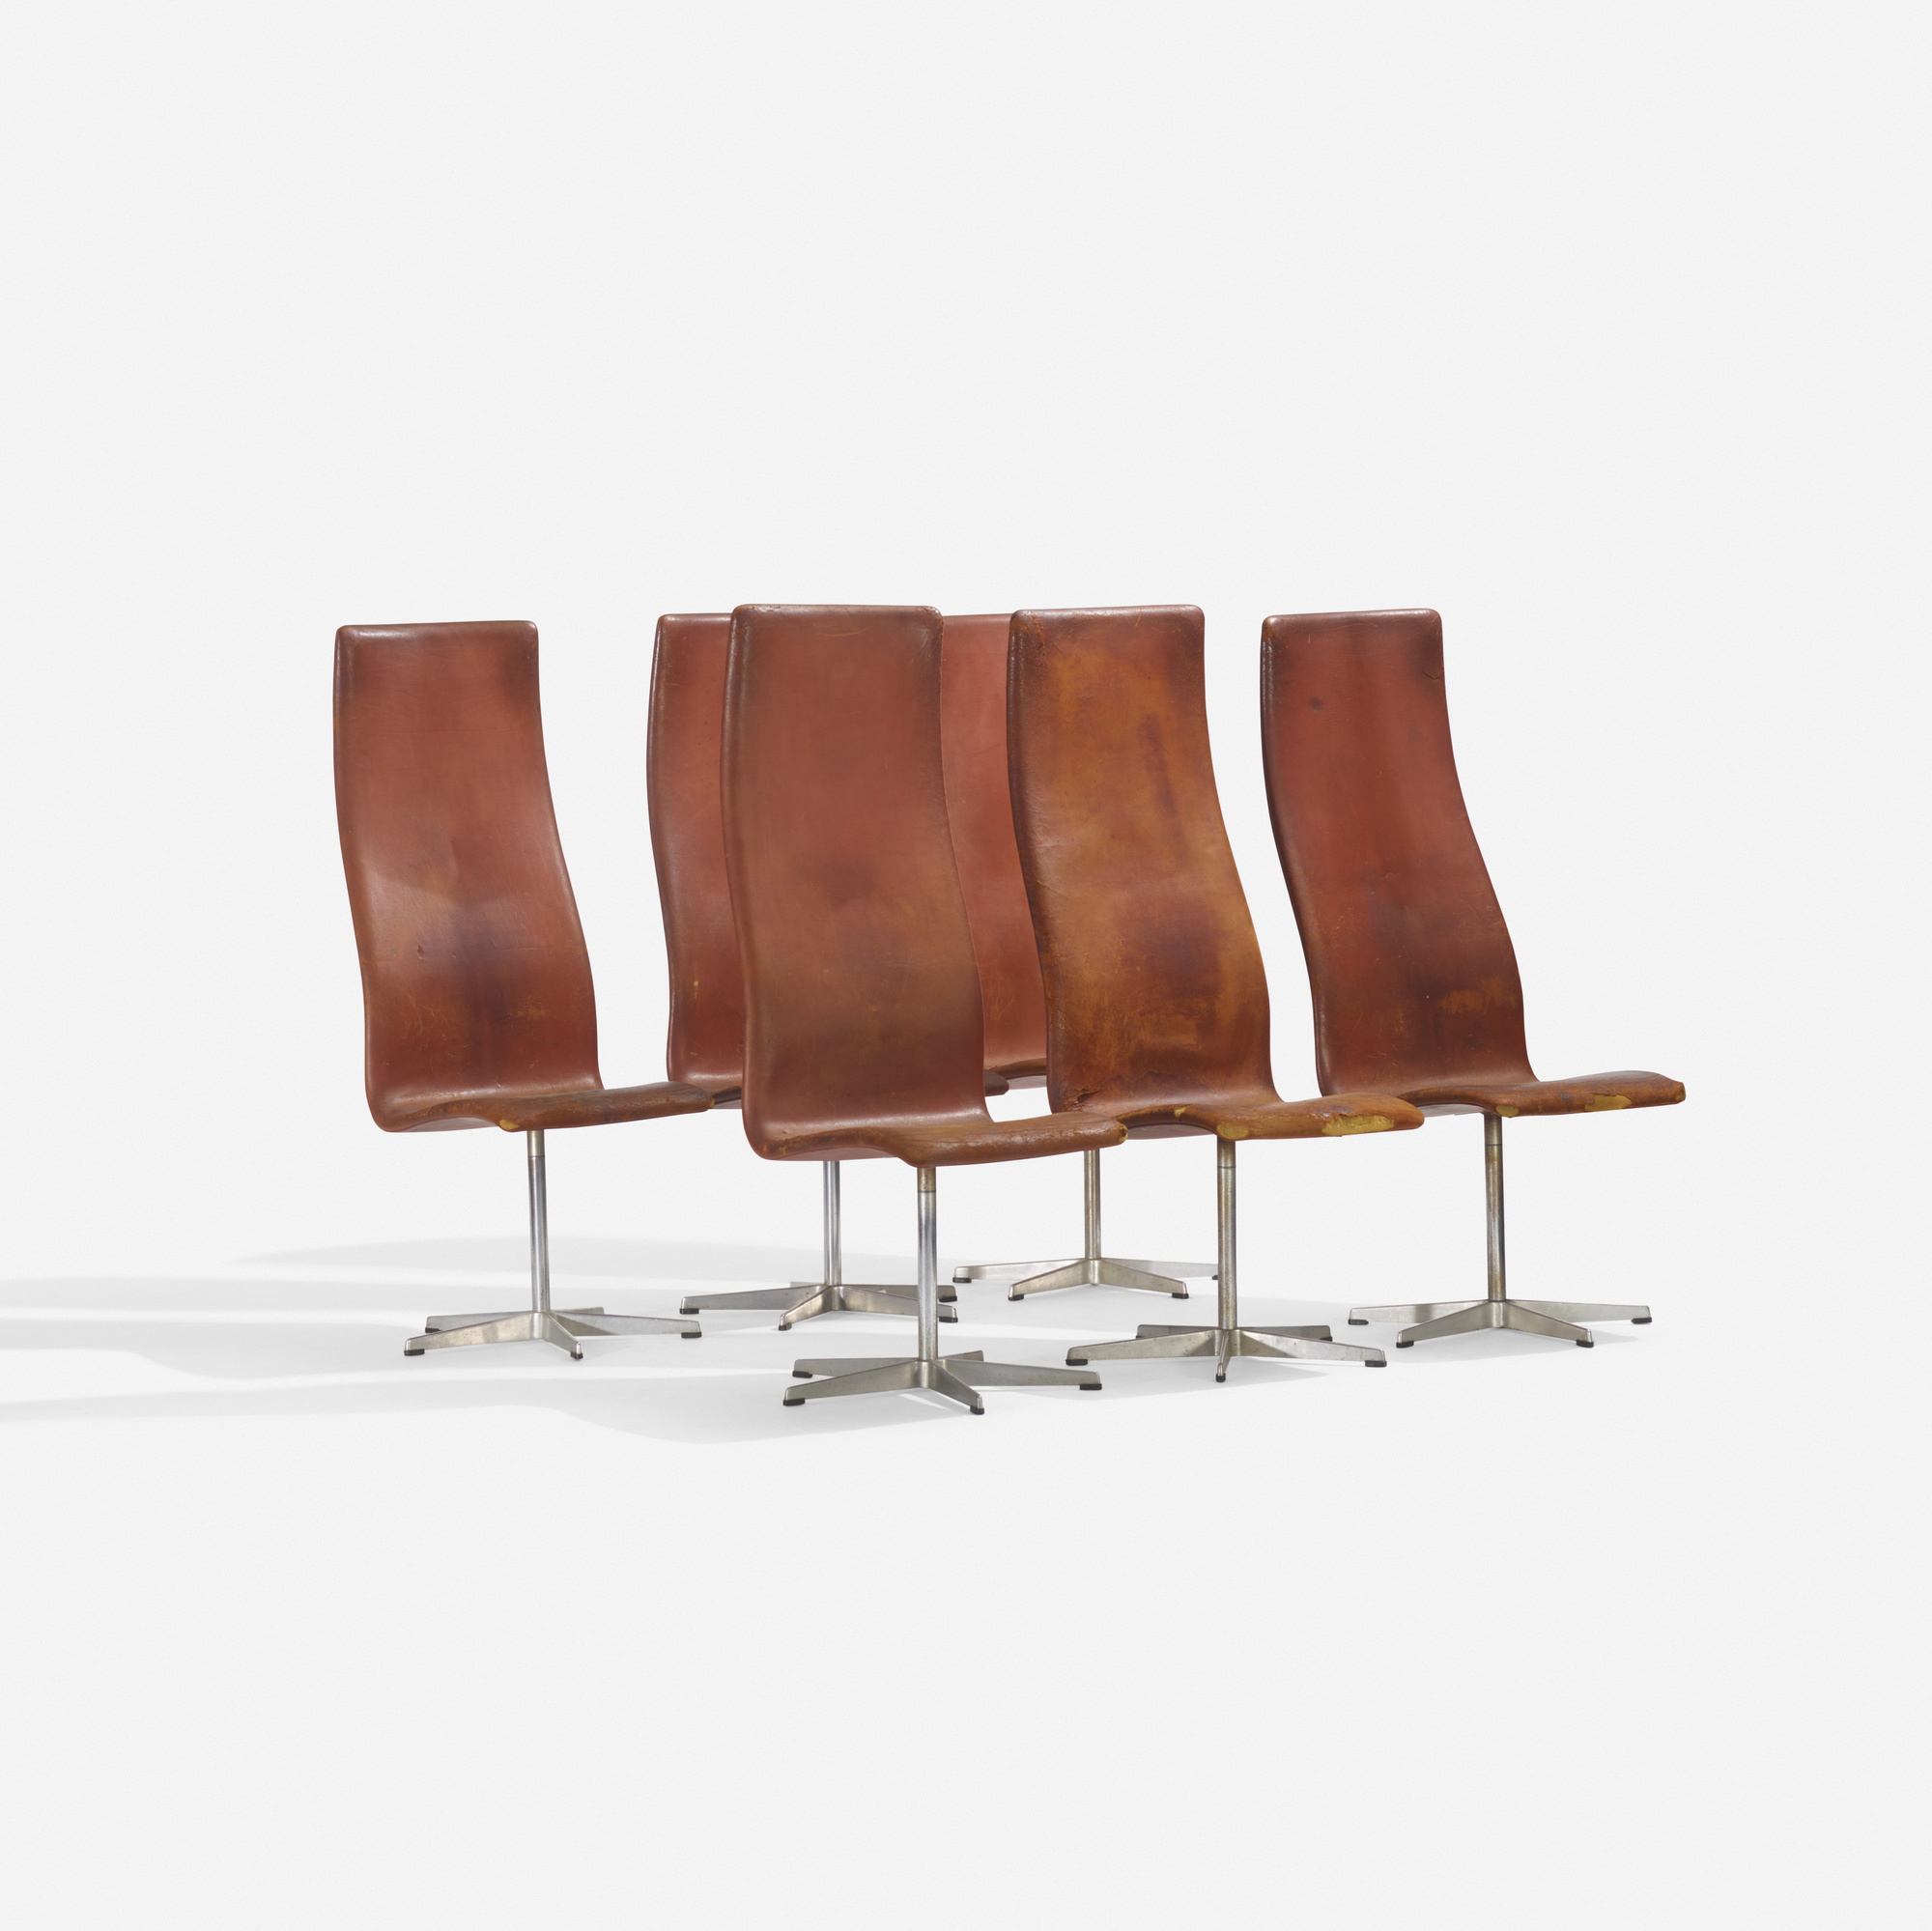 230: Arne Jacobsen / Oxford chairs model 7403, set of six (1 of 3)